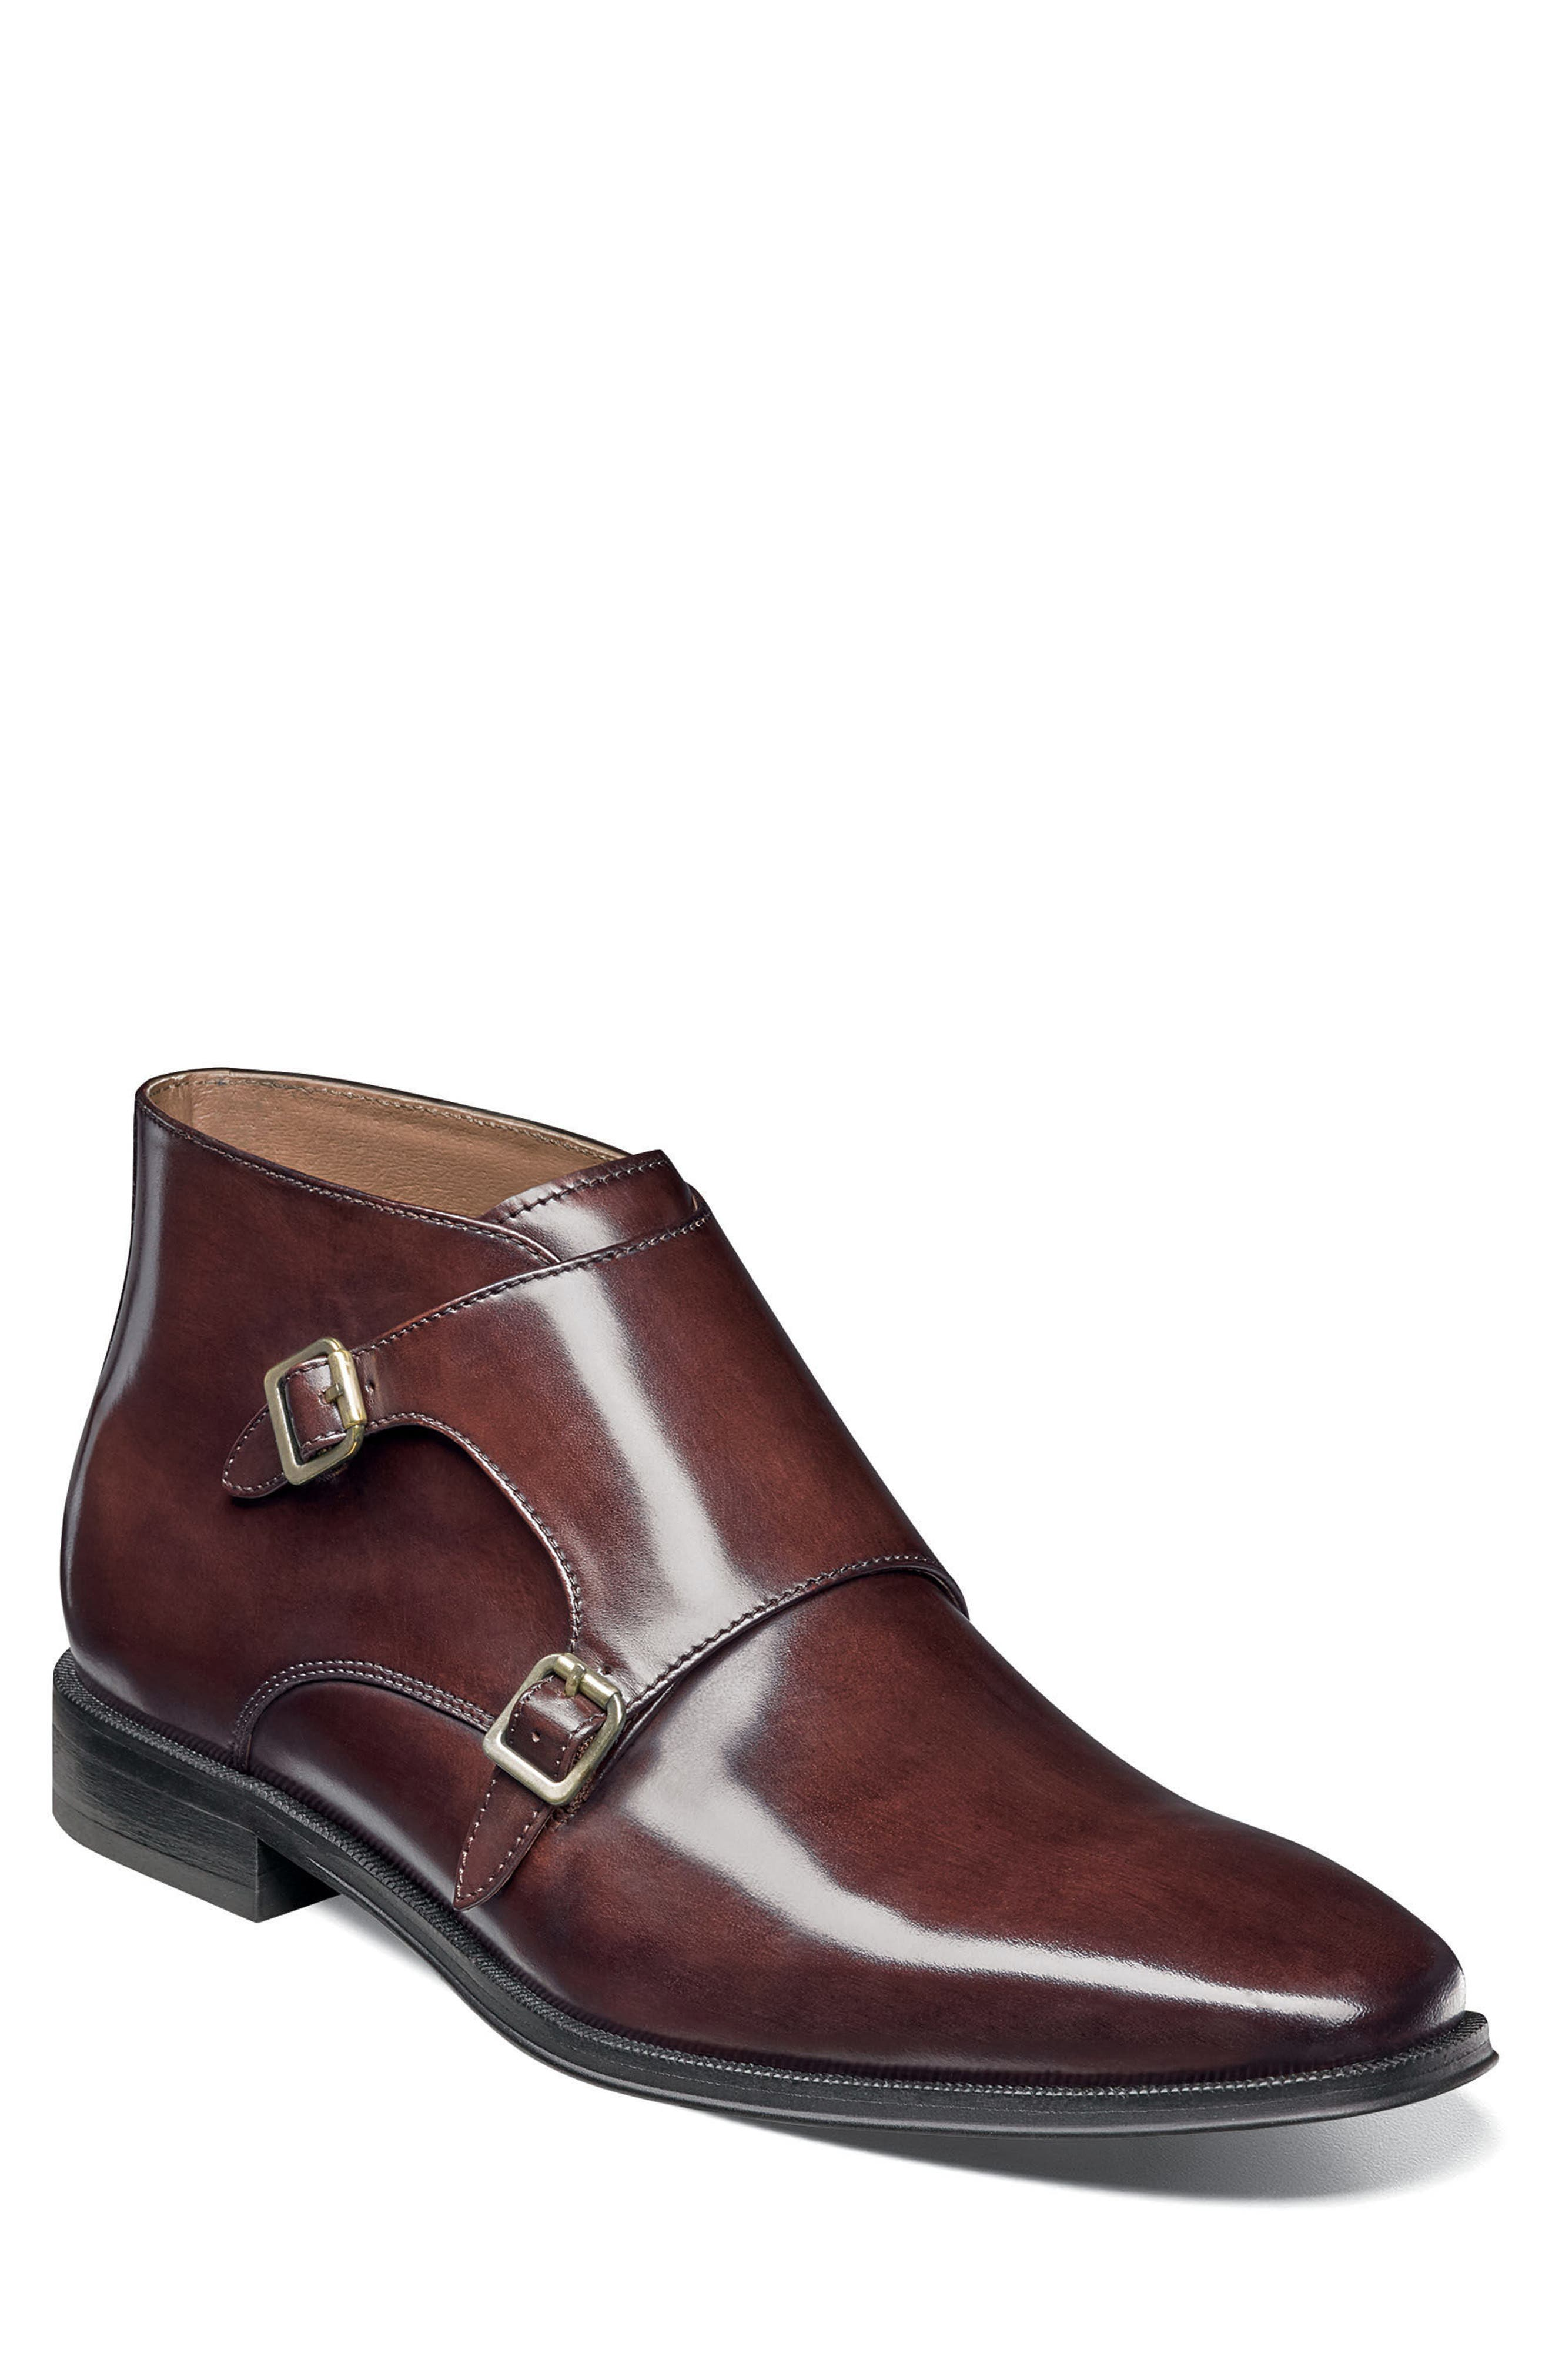 Belfast Double Monk Strap Boot,                         Main,                         color, Brown Leather